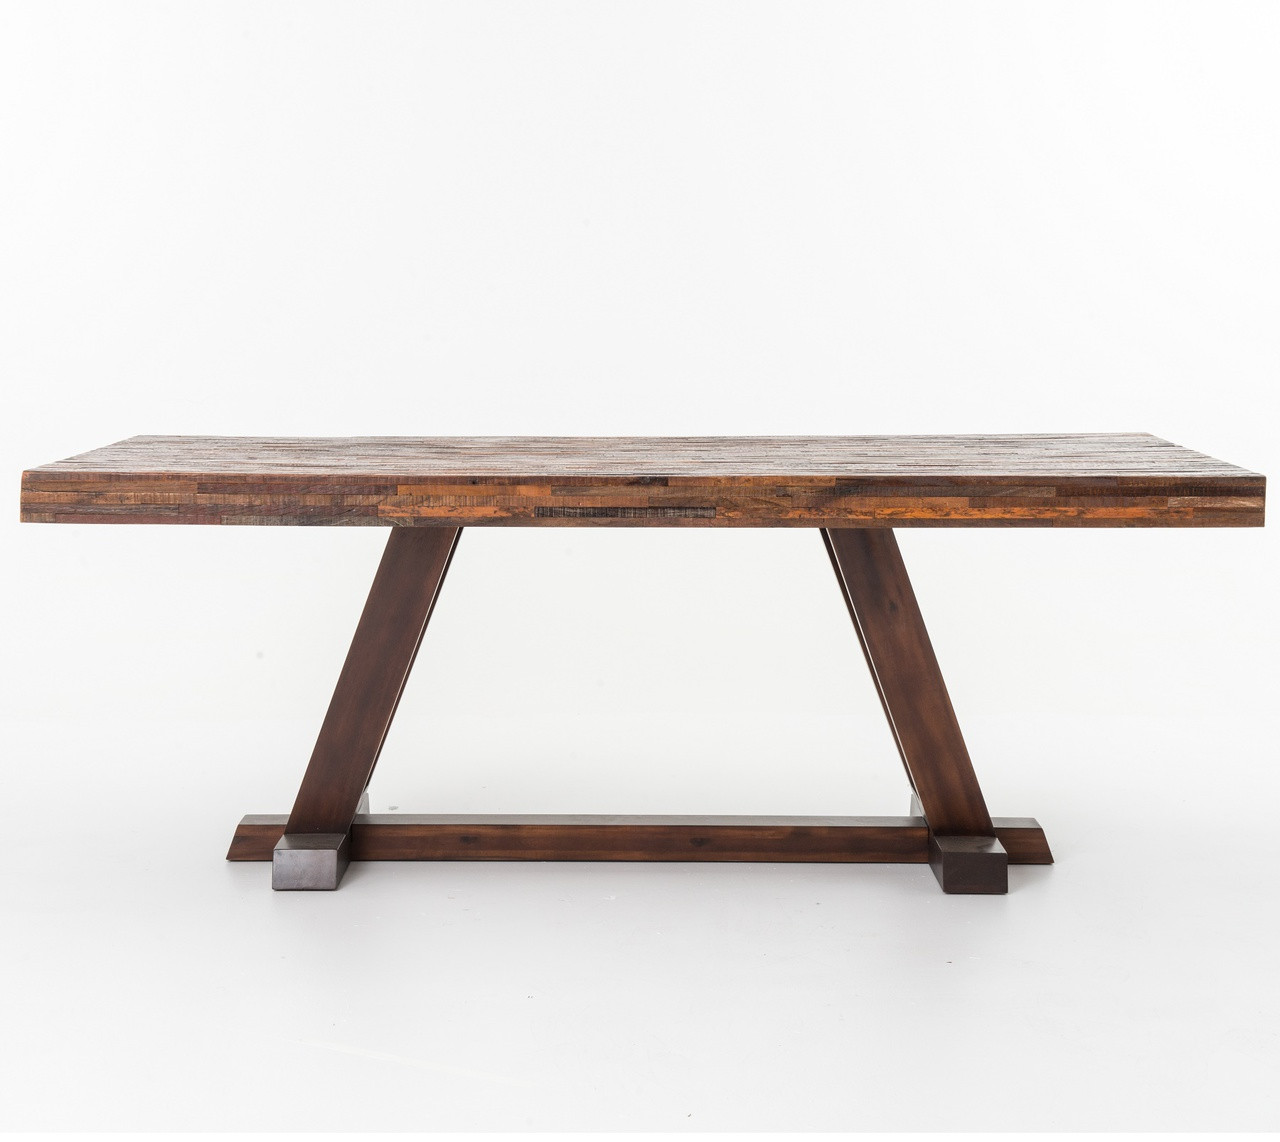 Beautiful New York Loft Reclaimed Wood Coffee Tables: Rustic Reclaimed Wood Bina Max Dining Table 84""